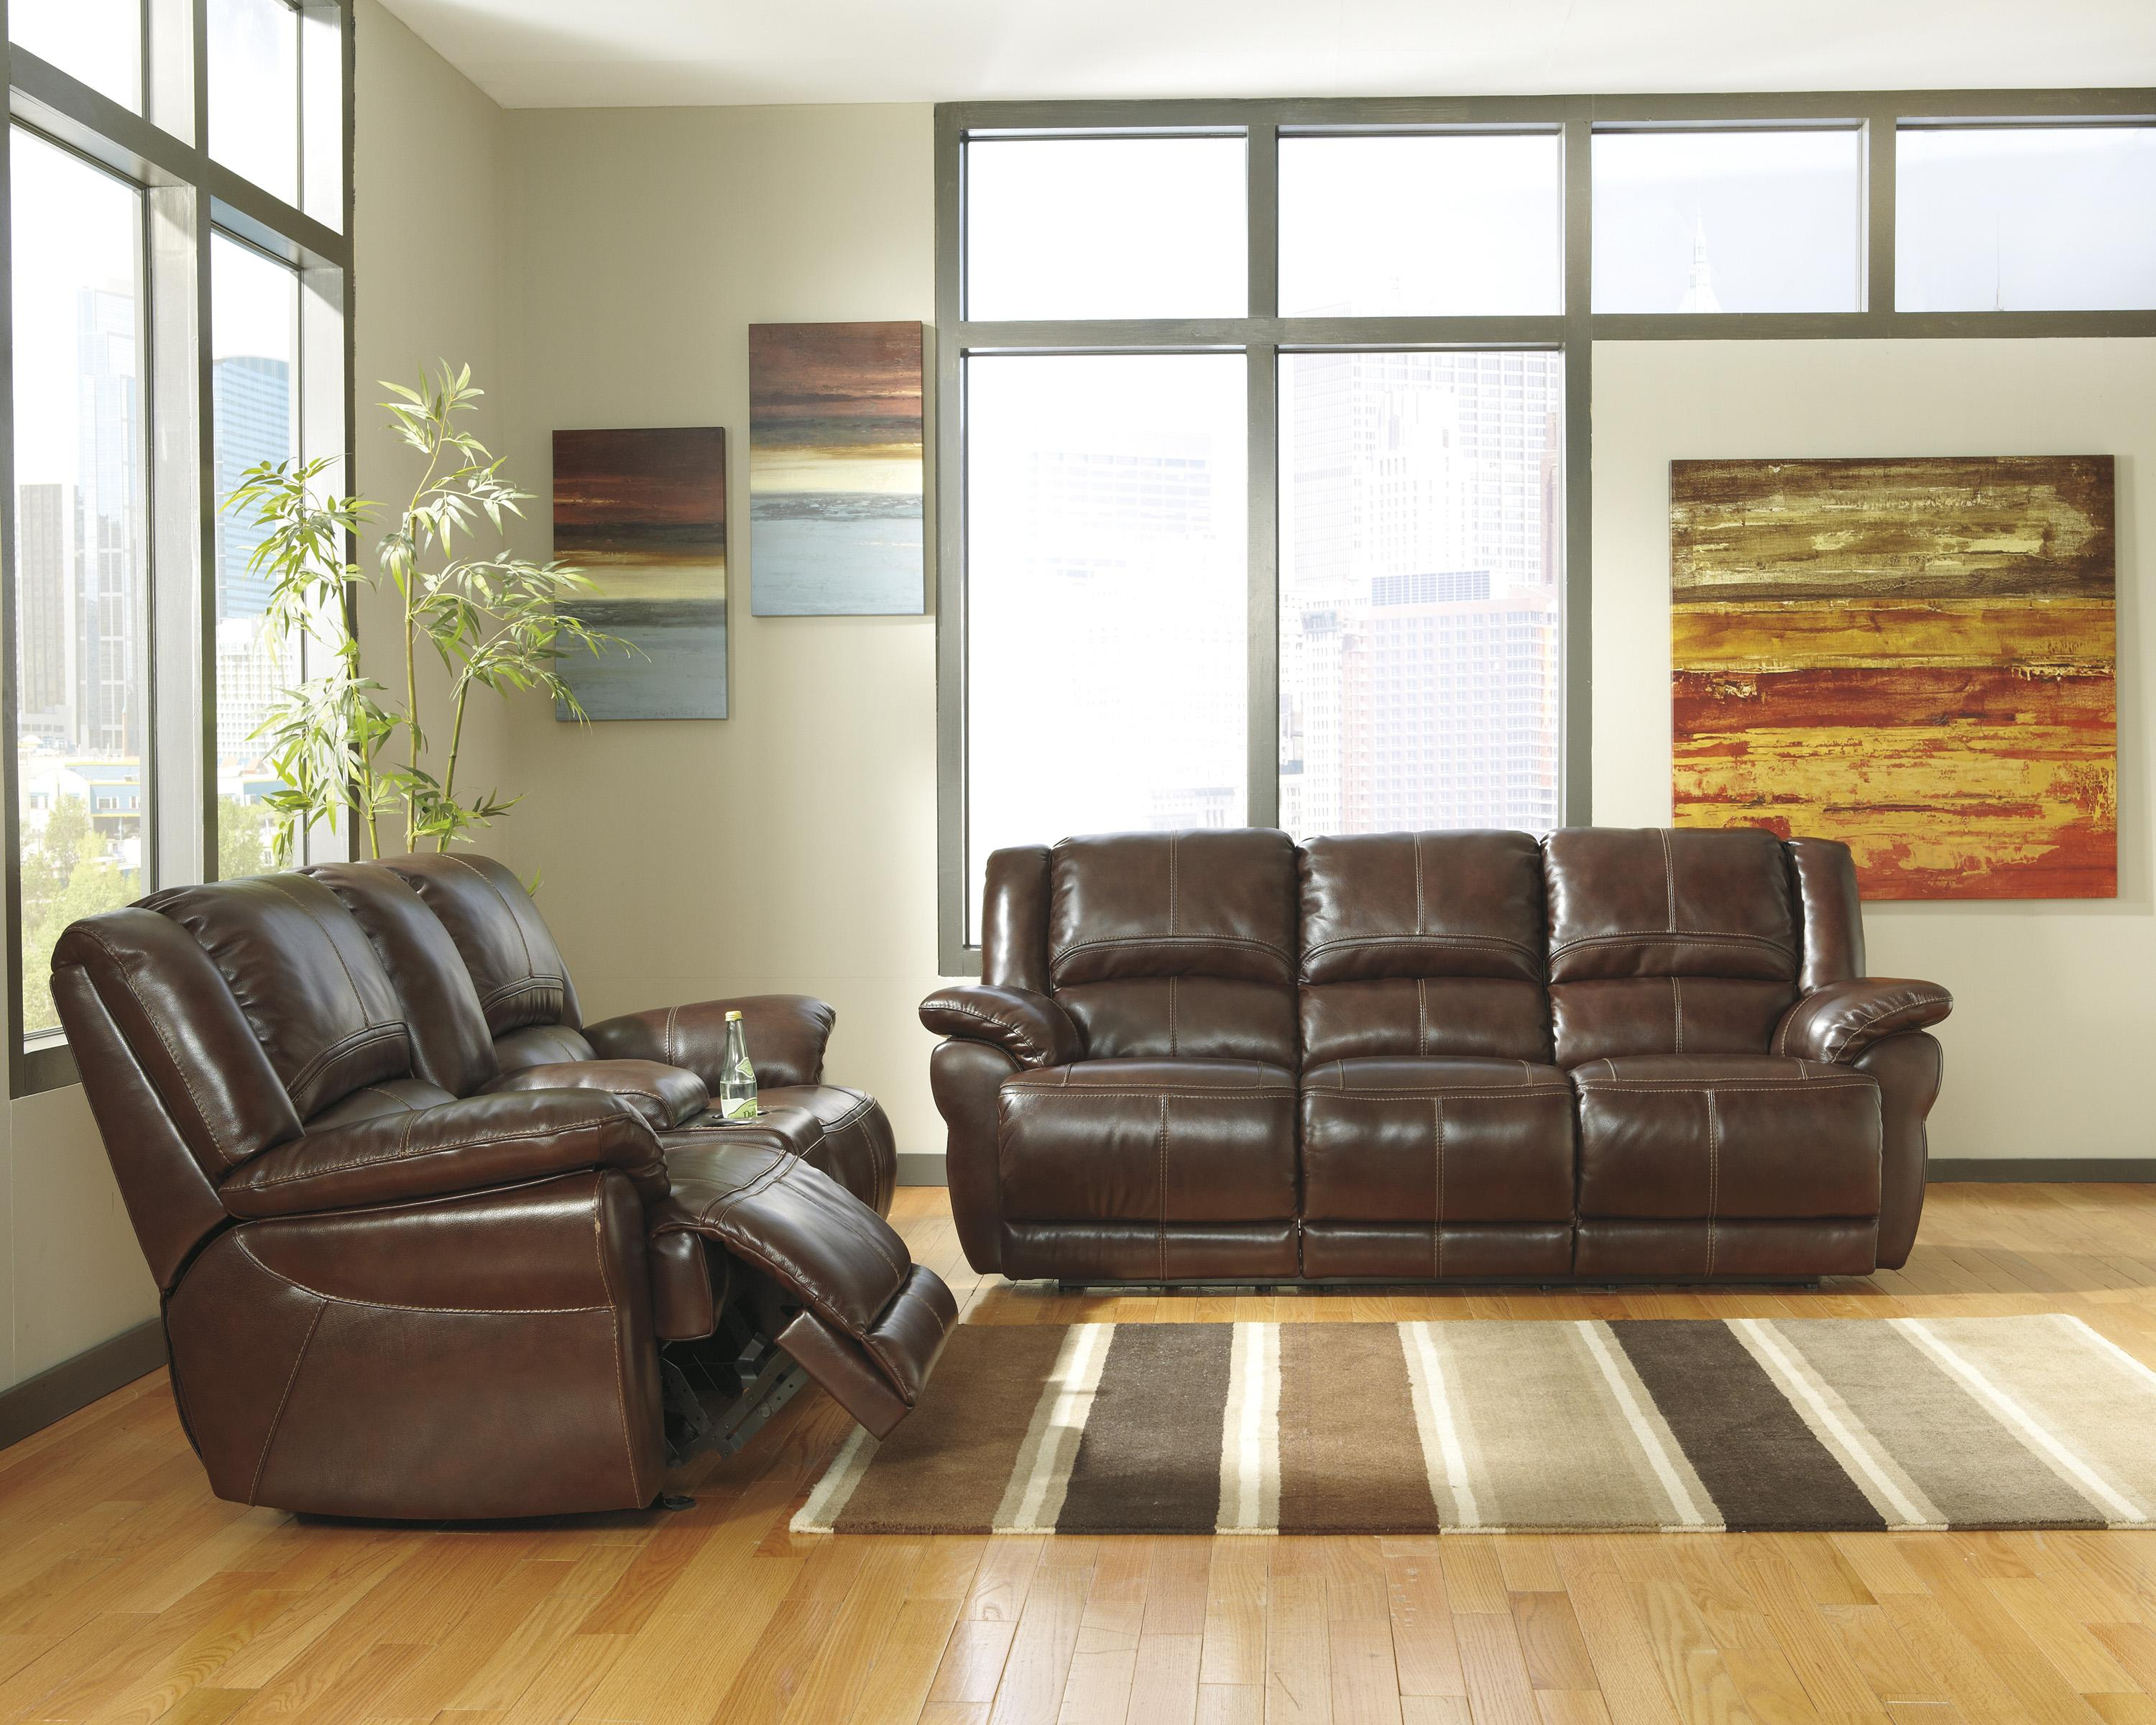 Signature Design by Ashley Lenoris - Coffee Reclining Living Room Group - Item Number: U98901 Living Room Group 2